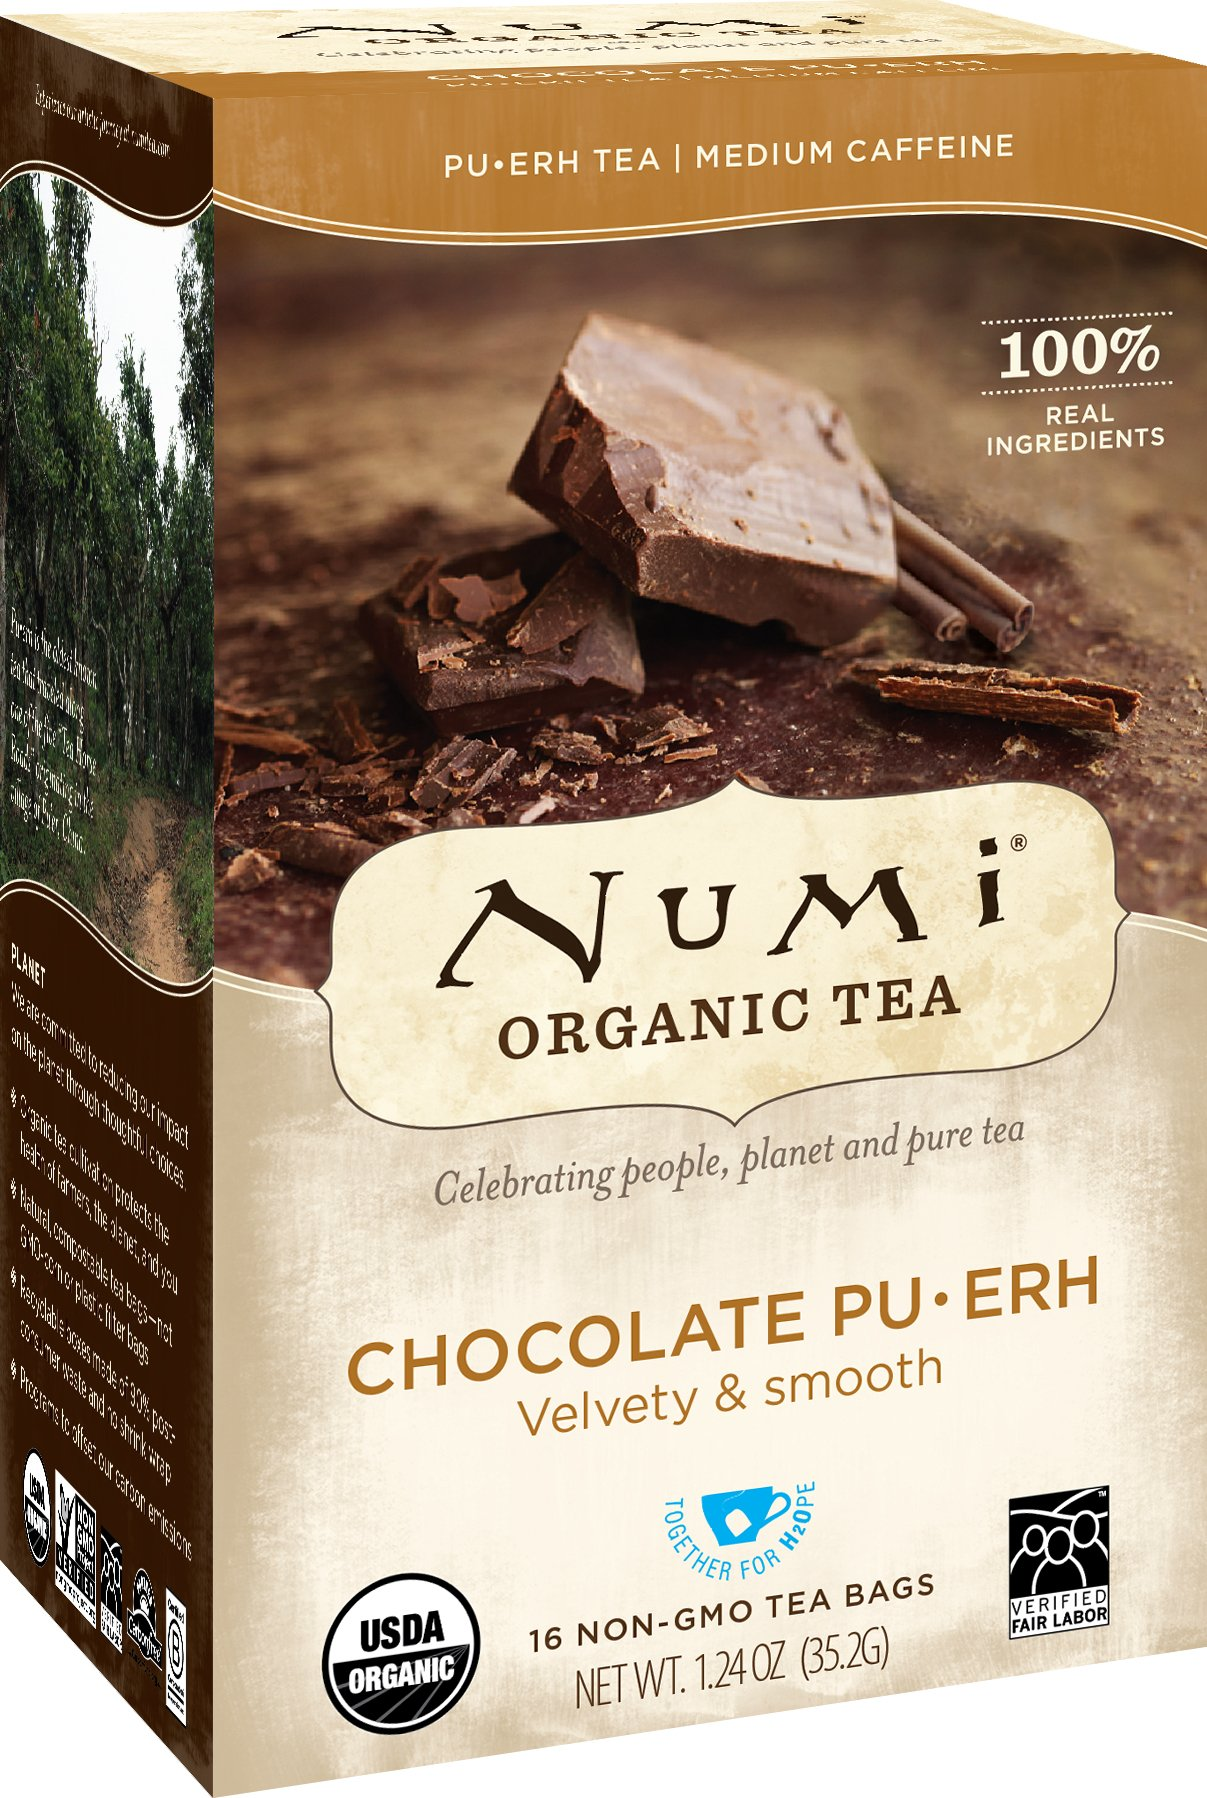 Numi Organic Chocolate Pu-erh Tea, Full Leaf Black Pu-erh Tea, 16 Count Tea Bags